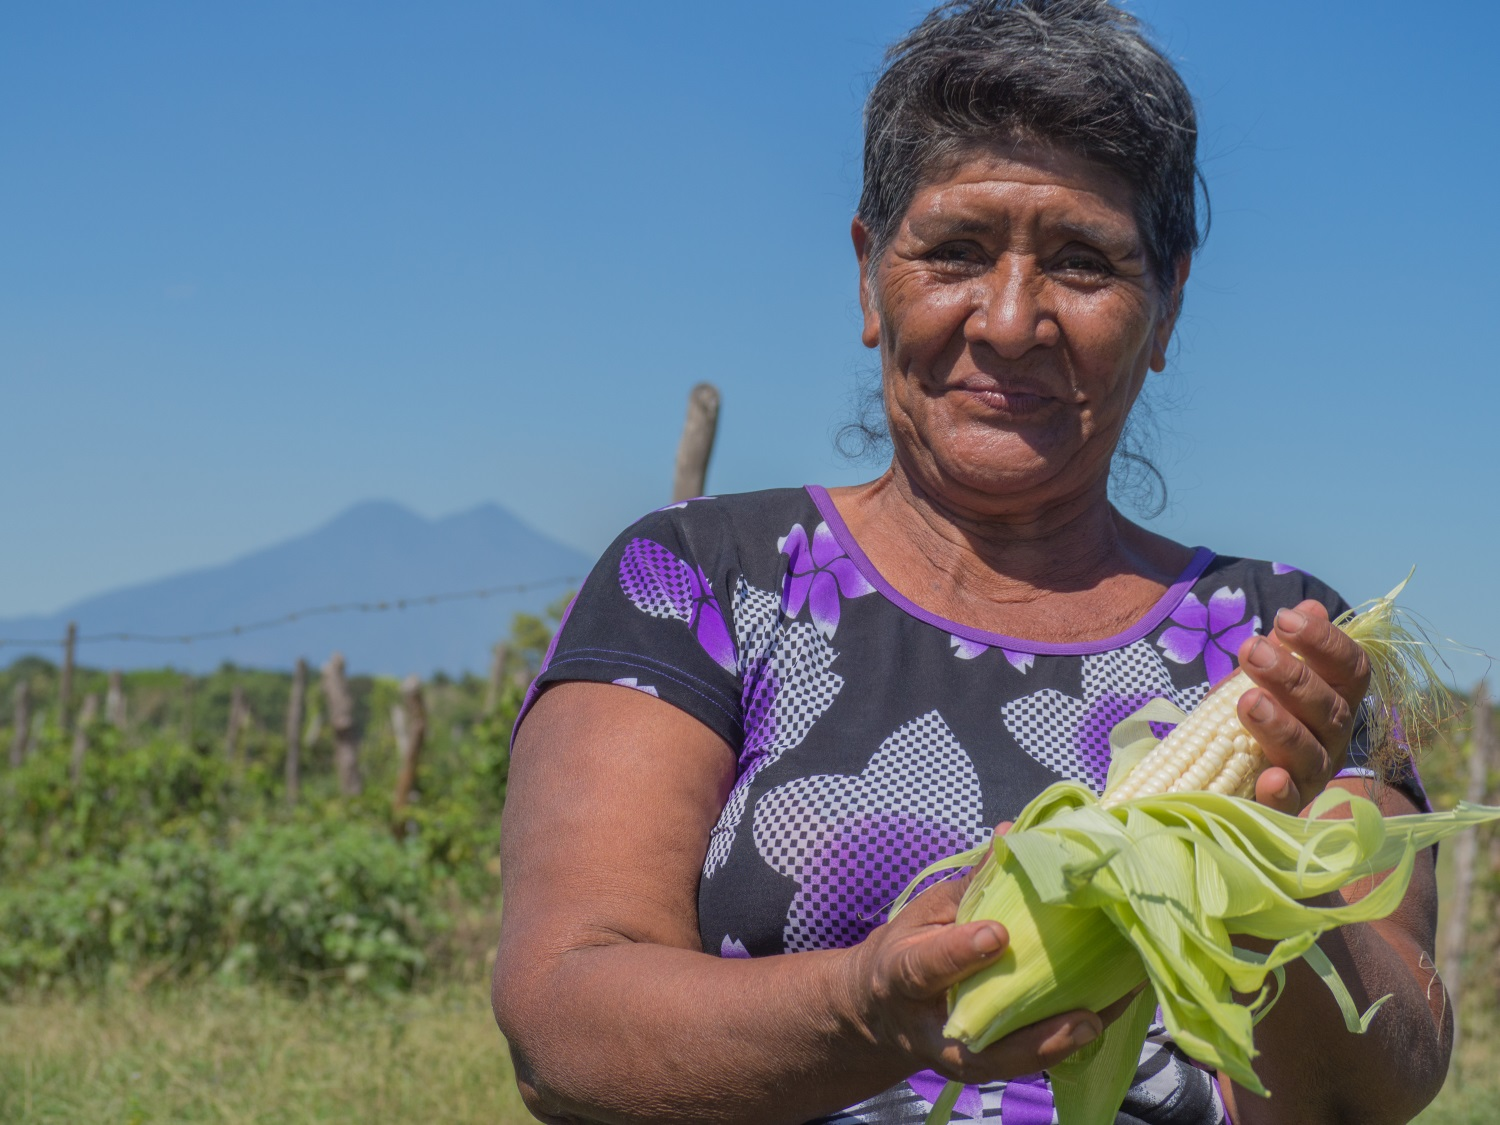 Farmer Flor Aquino displays corn grown on a community plot in El Ranchón, as part of a program focused on building resilience to drought. While the country is reeling from the effects of El Niño